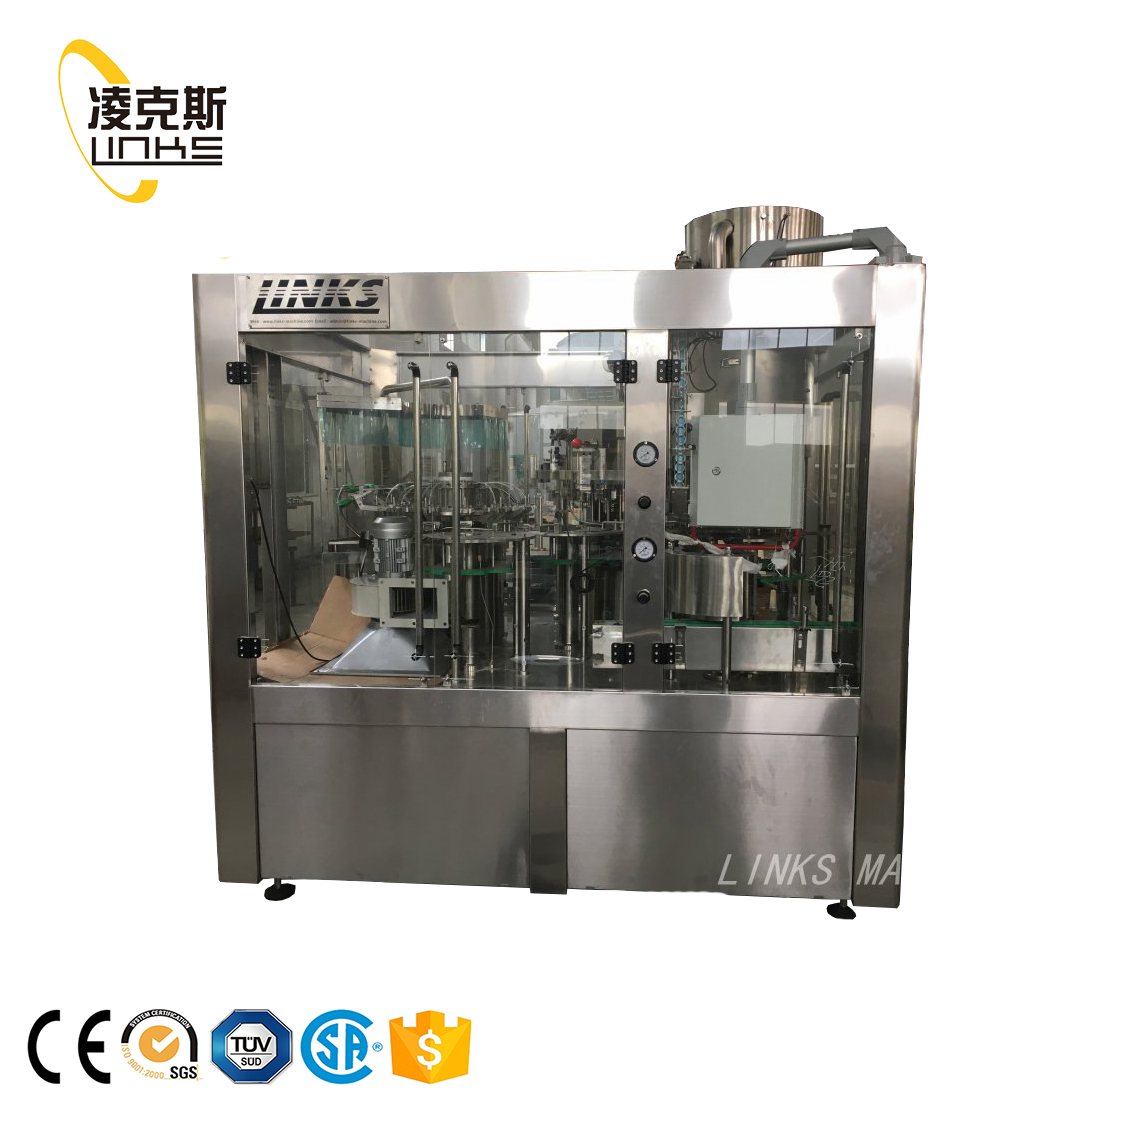 Zhangjiagang Direct price machine to make soft drinks for bottled beverage industry